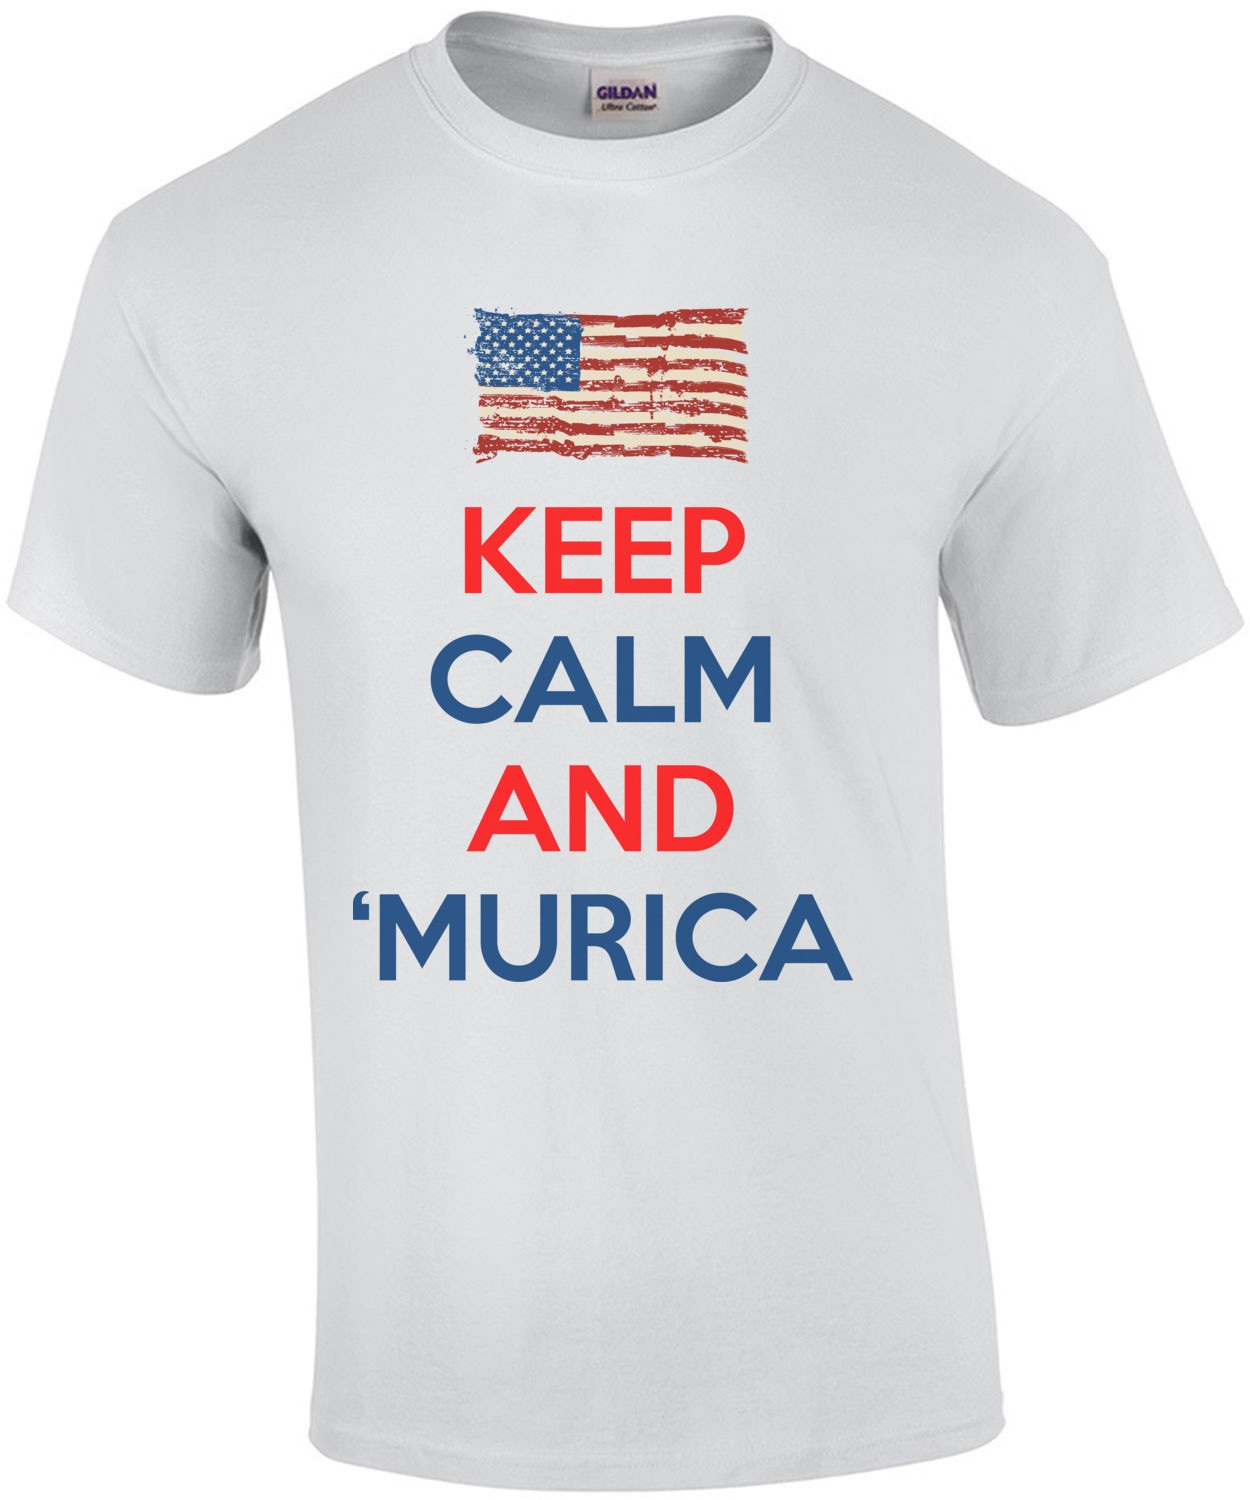 Keep Calm And Murica T-Shirt